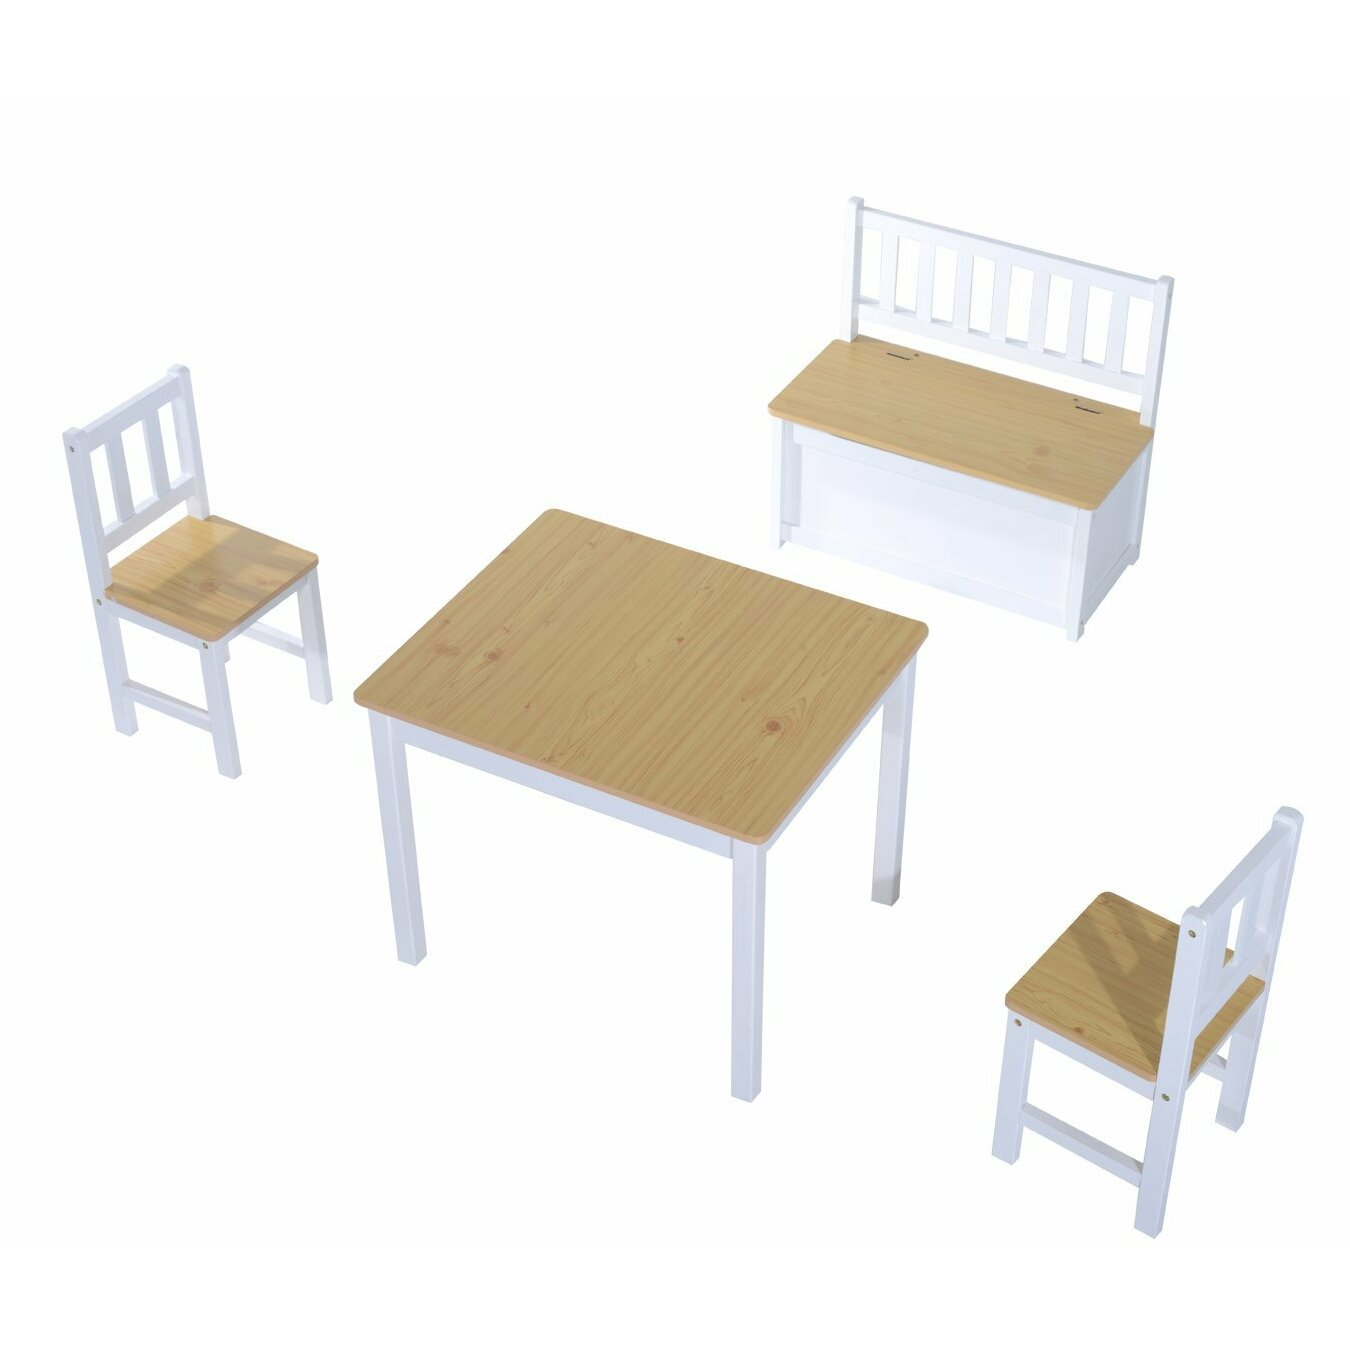 Hom Children s 4 Piece Table and Chair Set